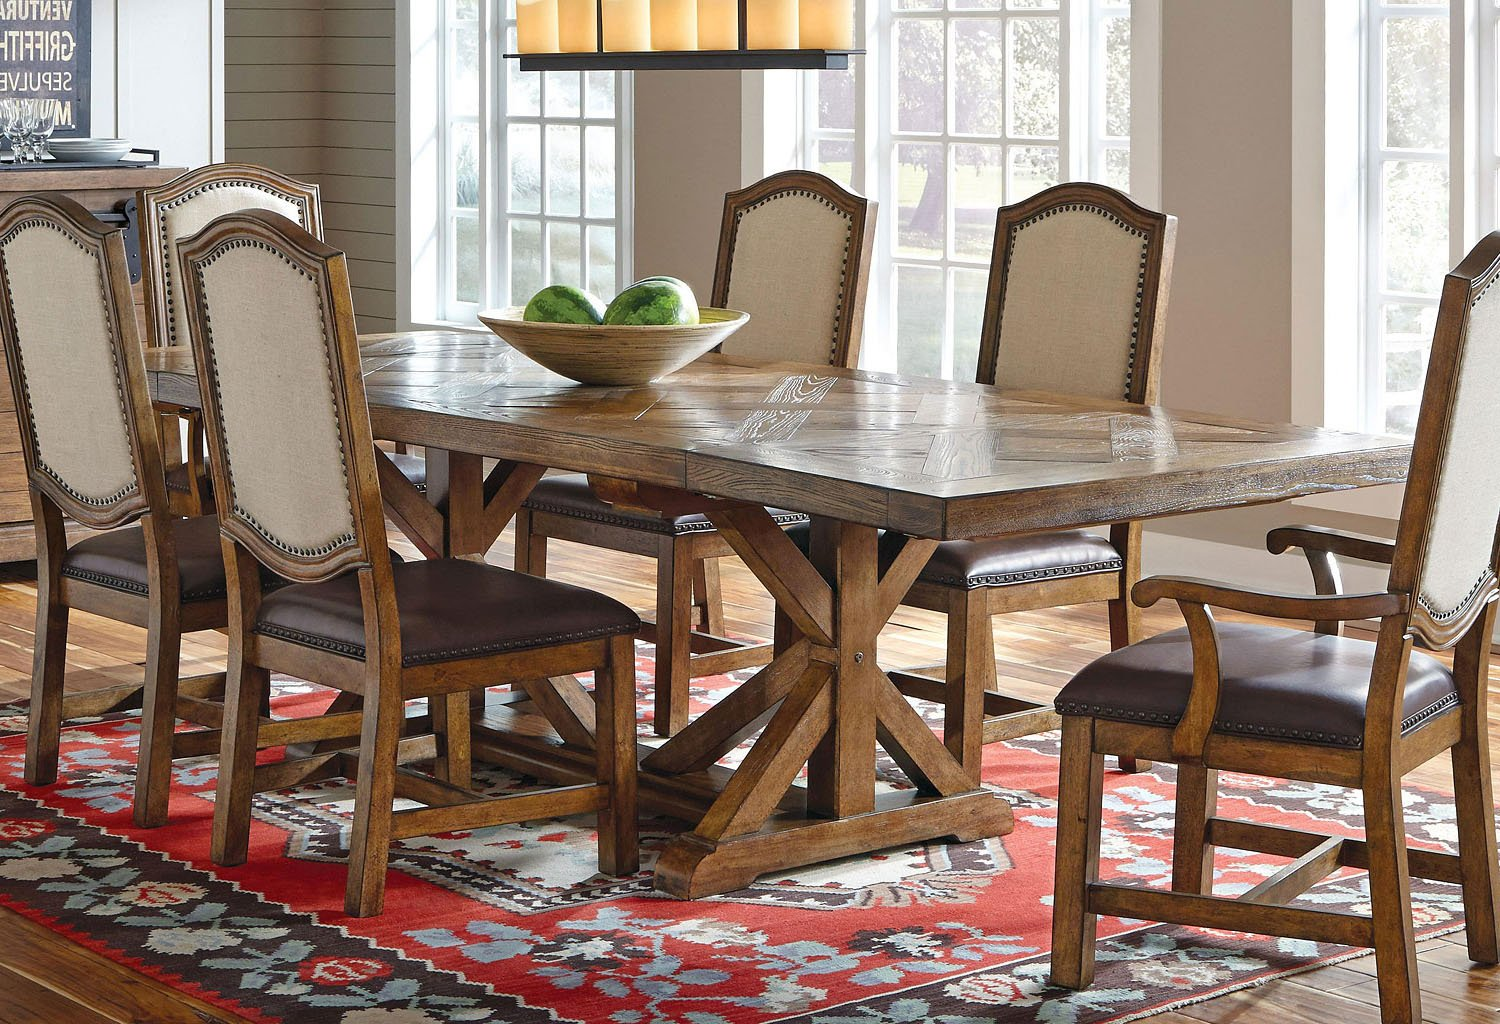 Beau American Attitude Cross Hatch Saw Horse Dining Table